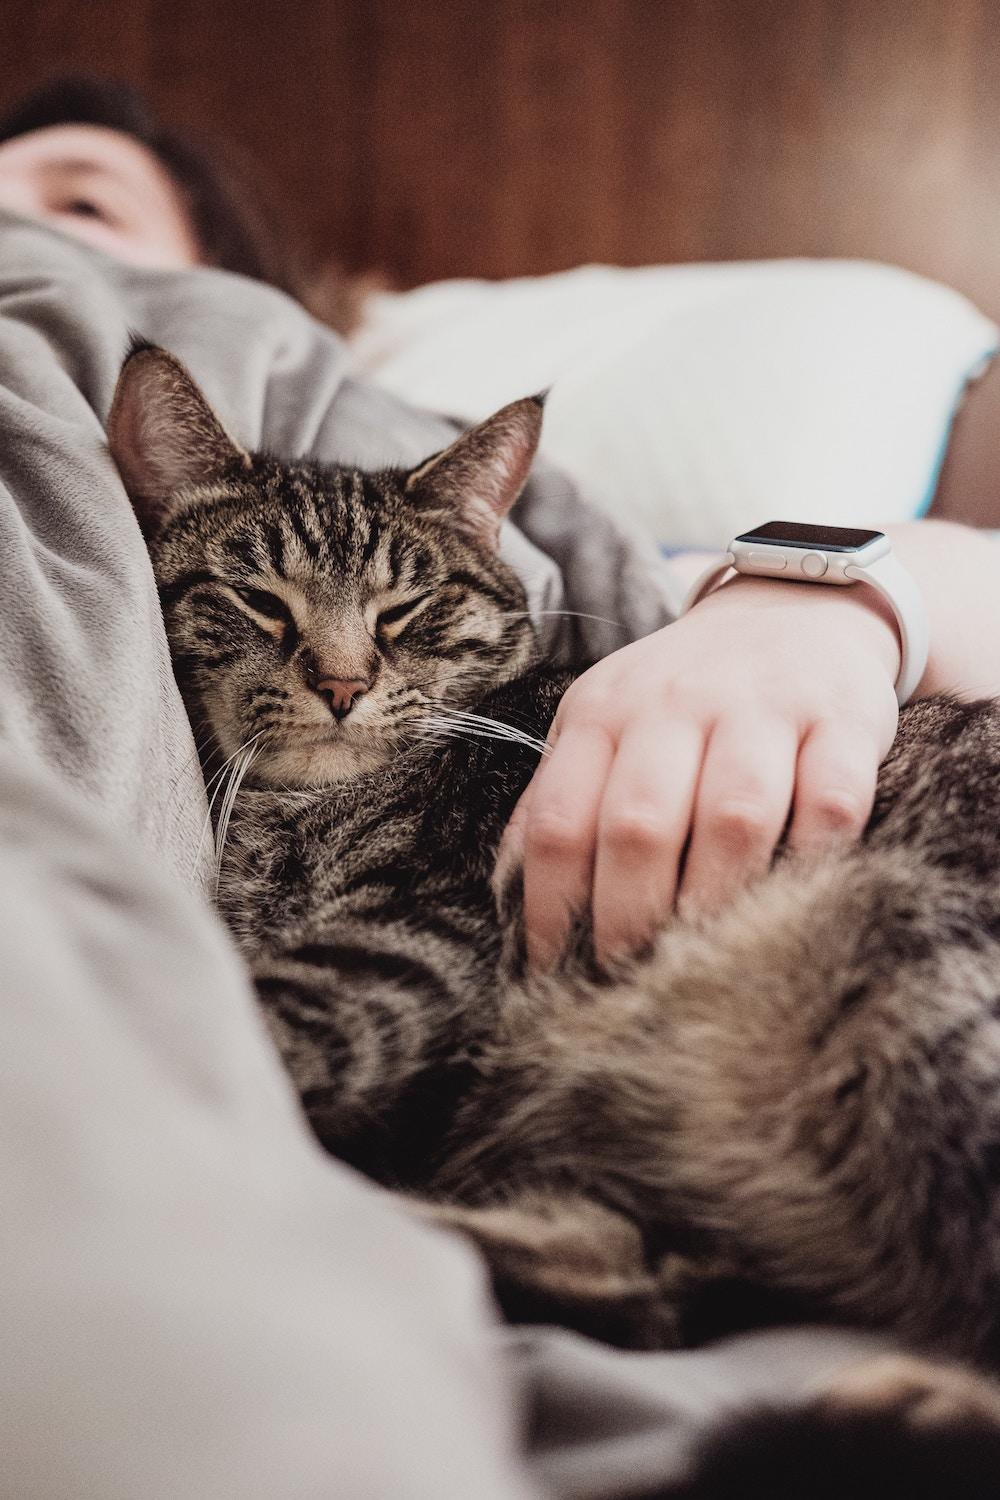 cat cuddling in bed with owner